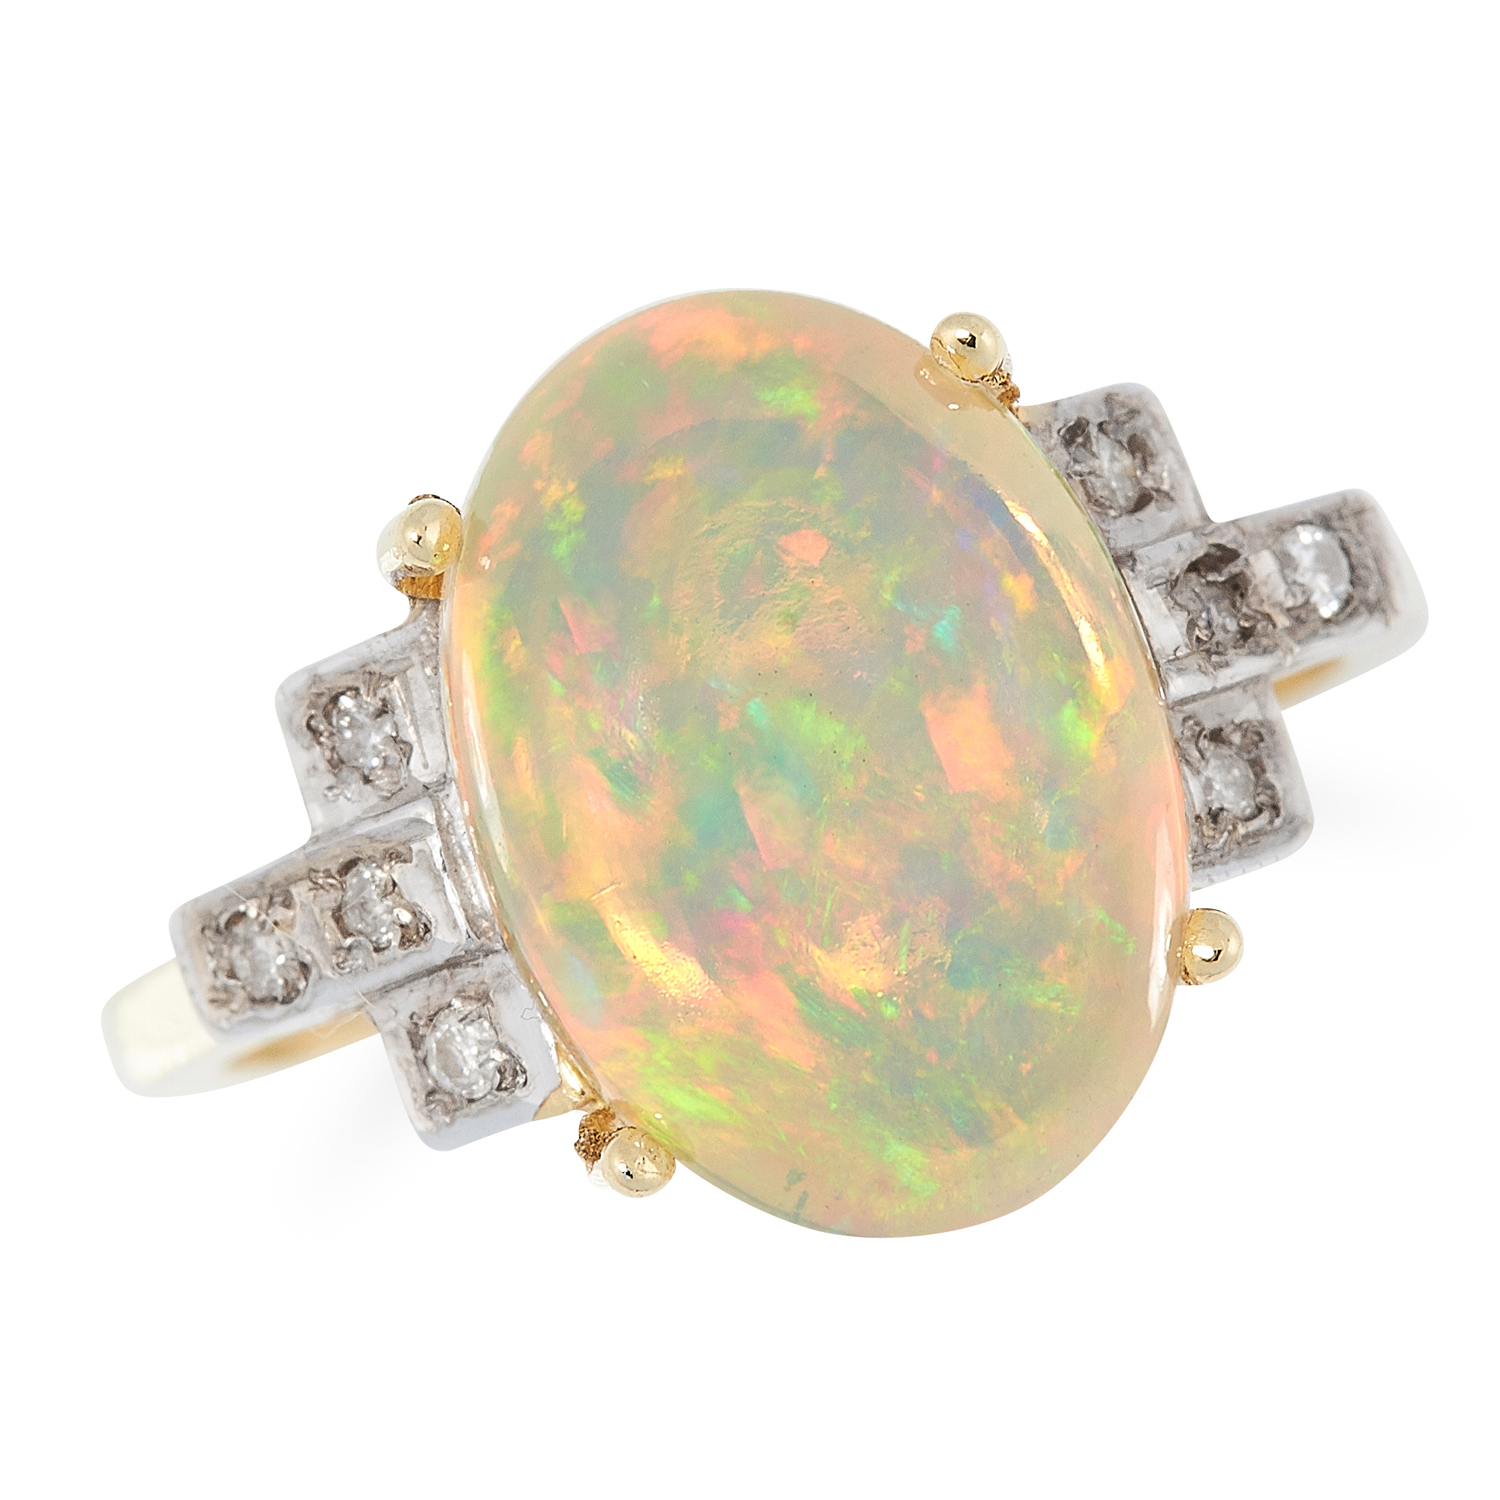 AN OPAL AND DIAMOND DRESS RING set with a cabochon